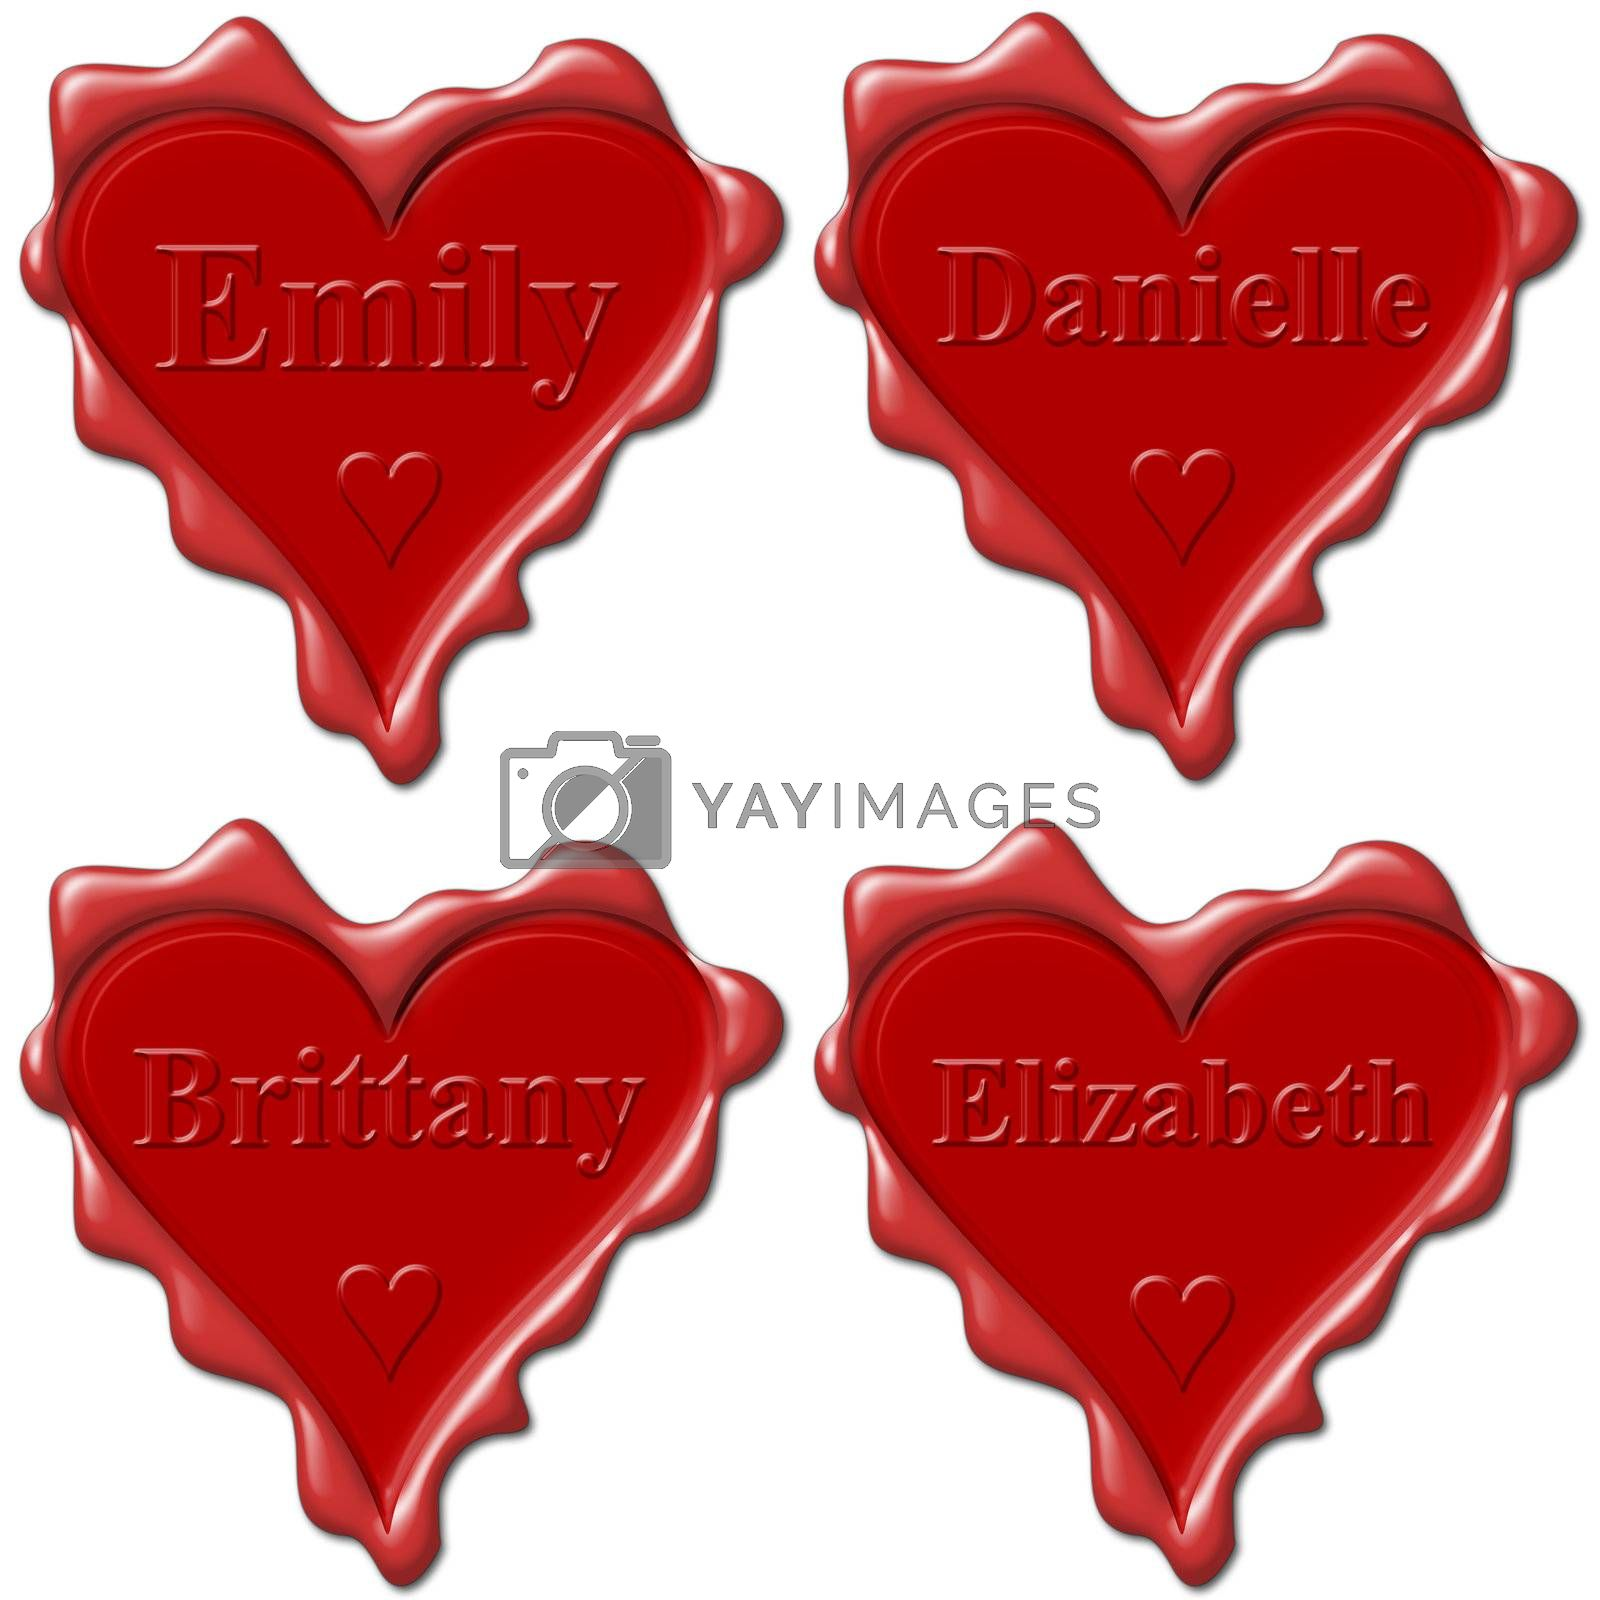 Valentine love hearts with names: Emily, Danielle, Brittany, Elizabeth